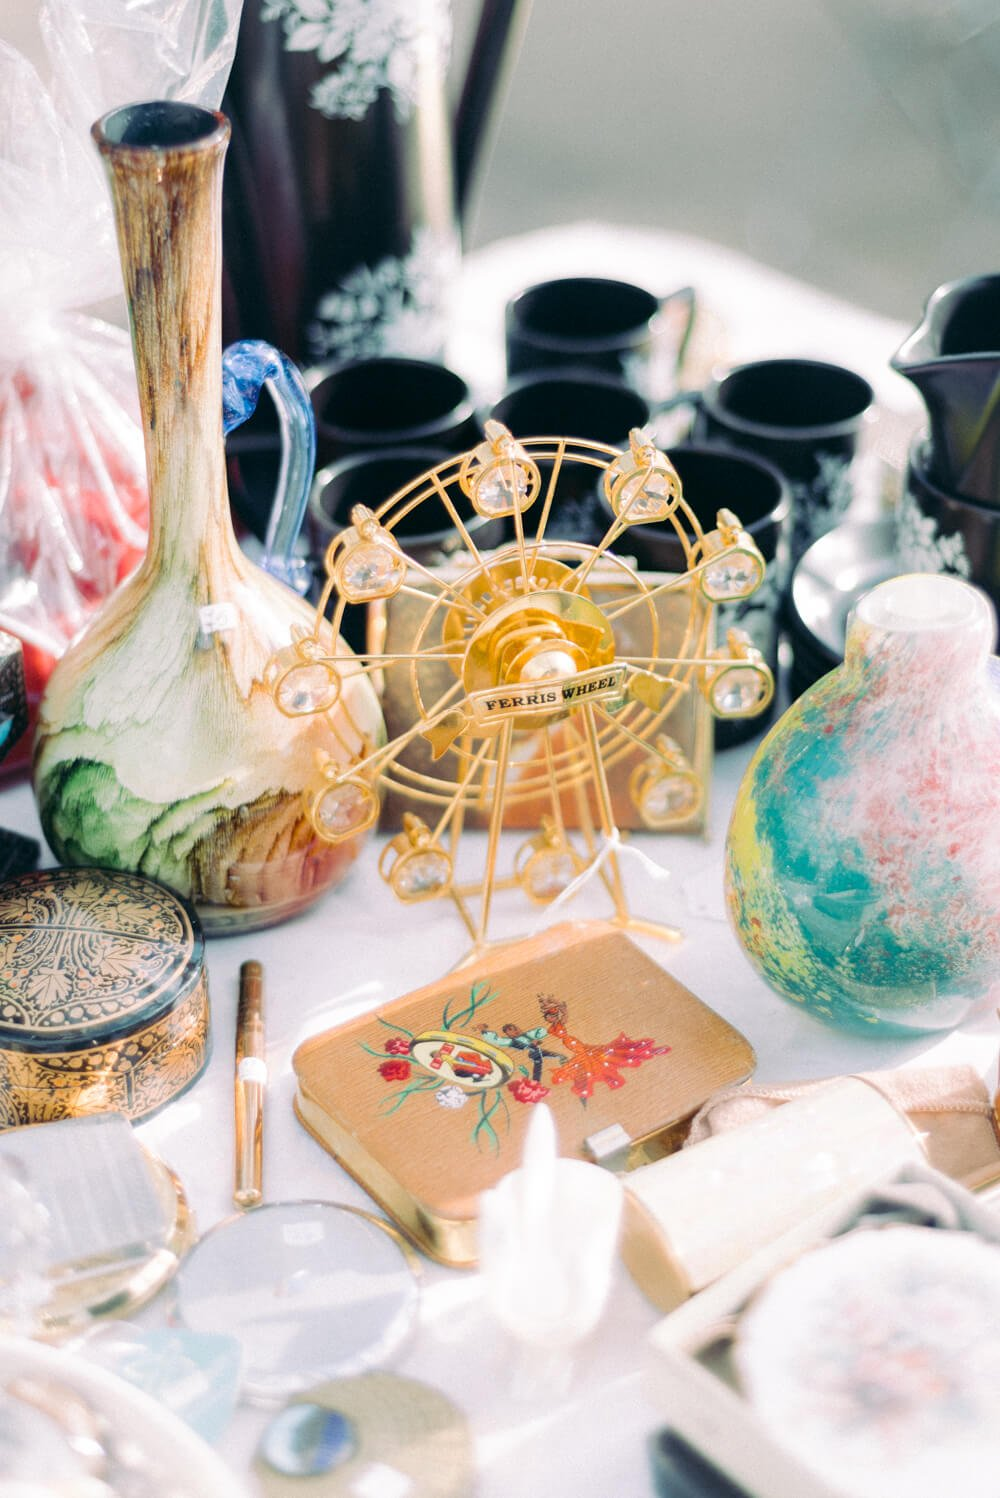 Antique products sold at the London Covent Garden Jubilee antiques market: Gold ferris wheel and vintage jewellery boxes with fine porcelain and china wares - Photo by Cristina Ilao